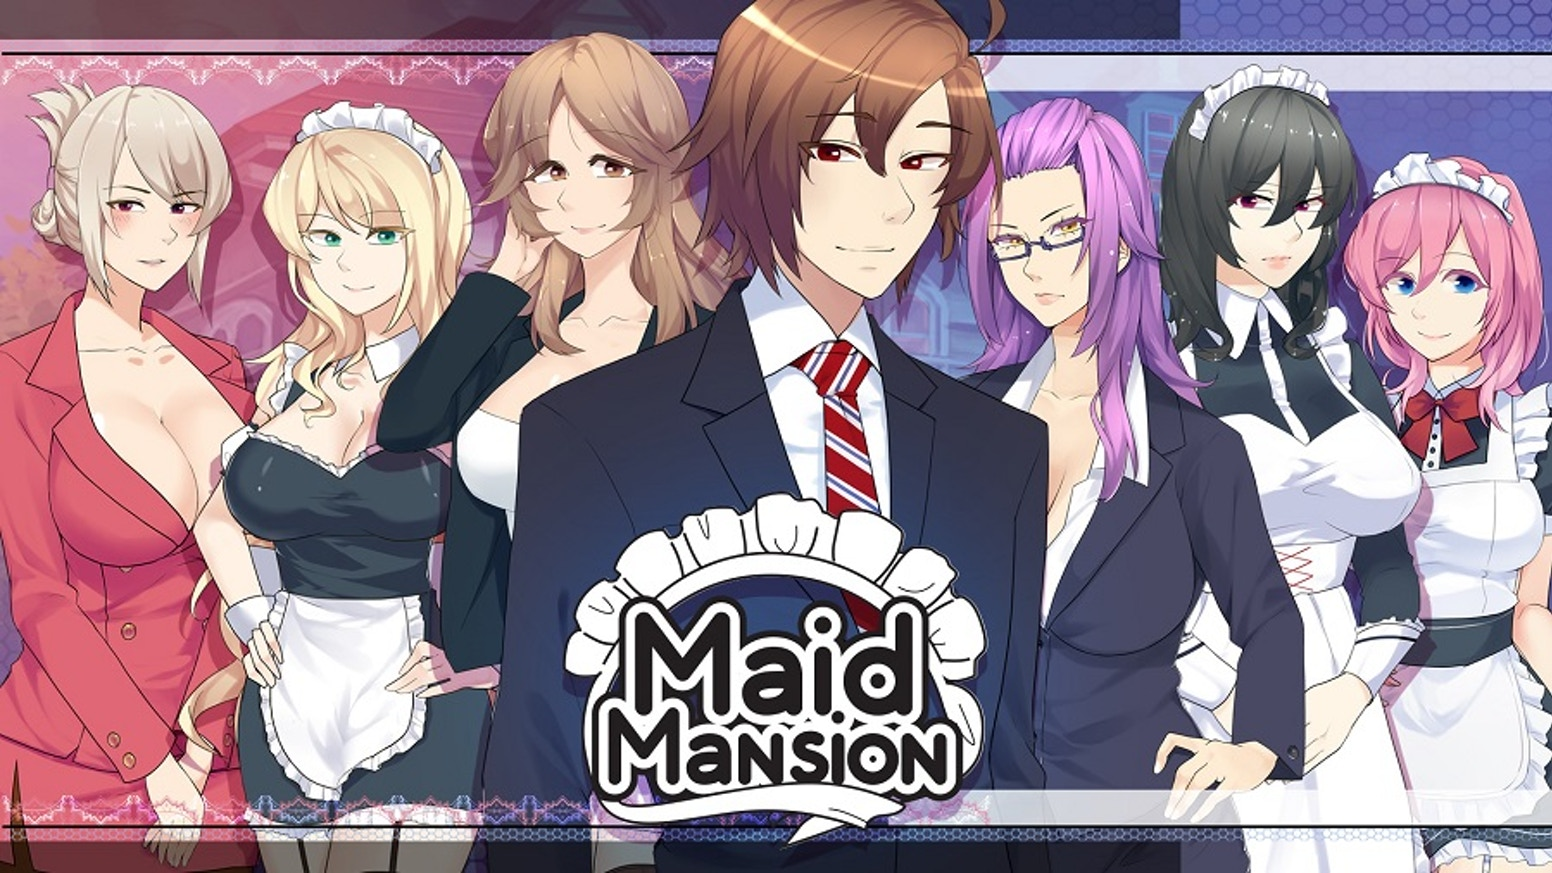 In this visual novel filled with beautiful maids, you must tempt fate with your decisions as the lord of your new estate, Maid Mansion!